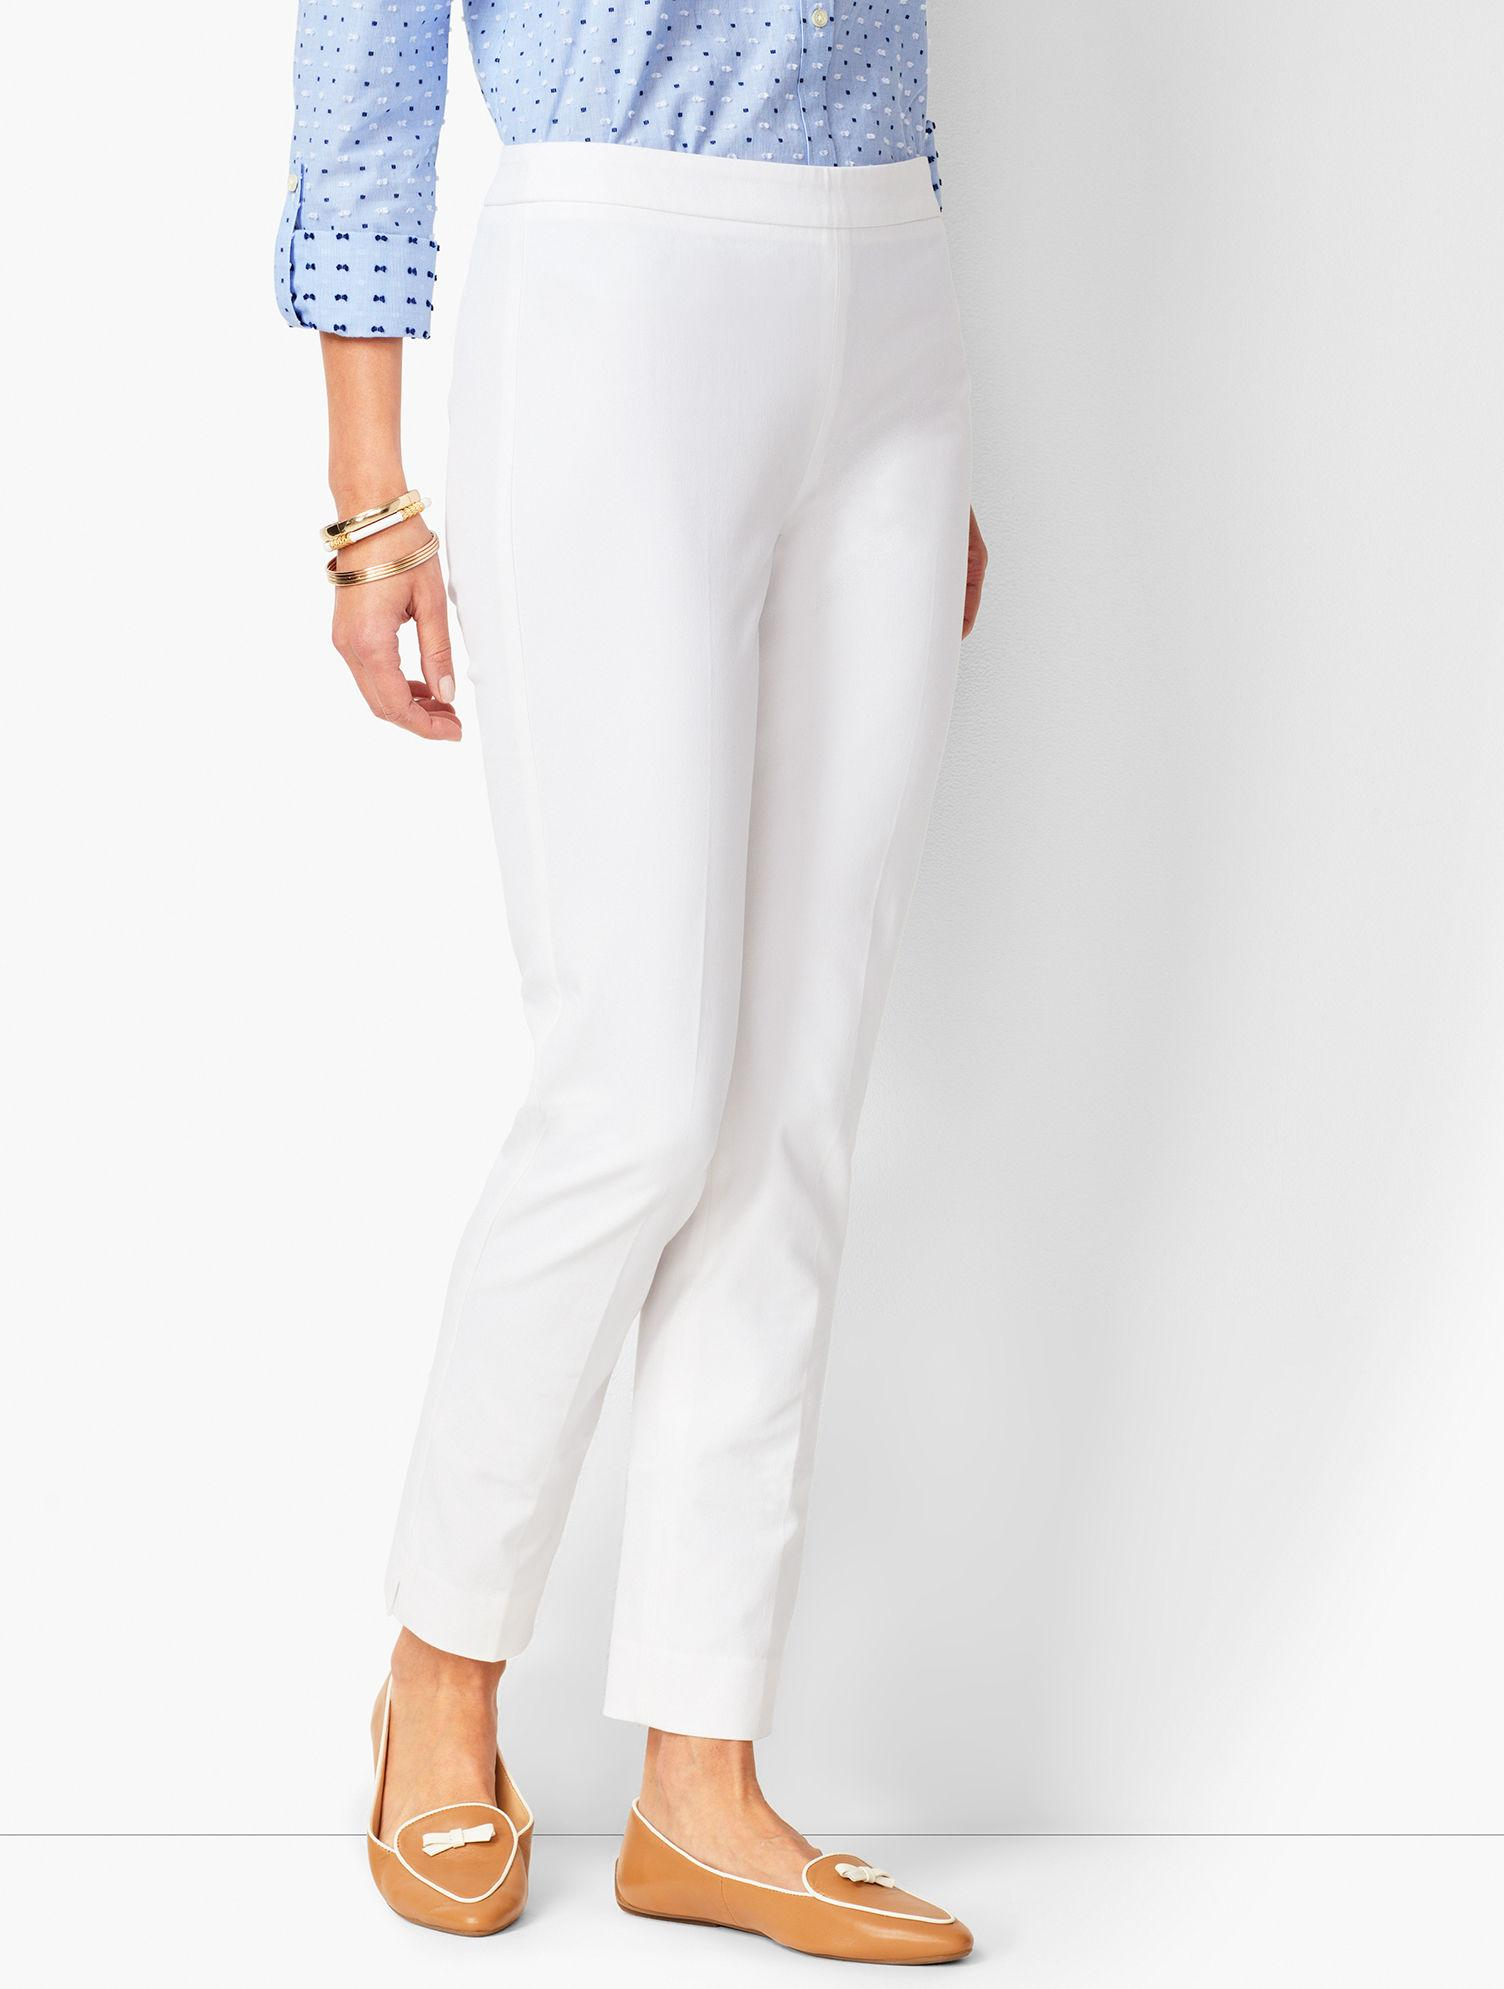 dfcc8b46a2 Lyst - Talbots Chatham Ankle Pants in White